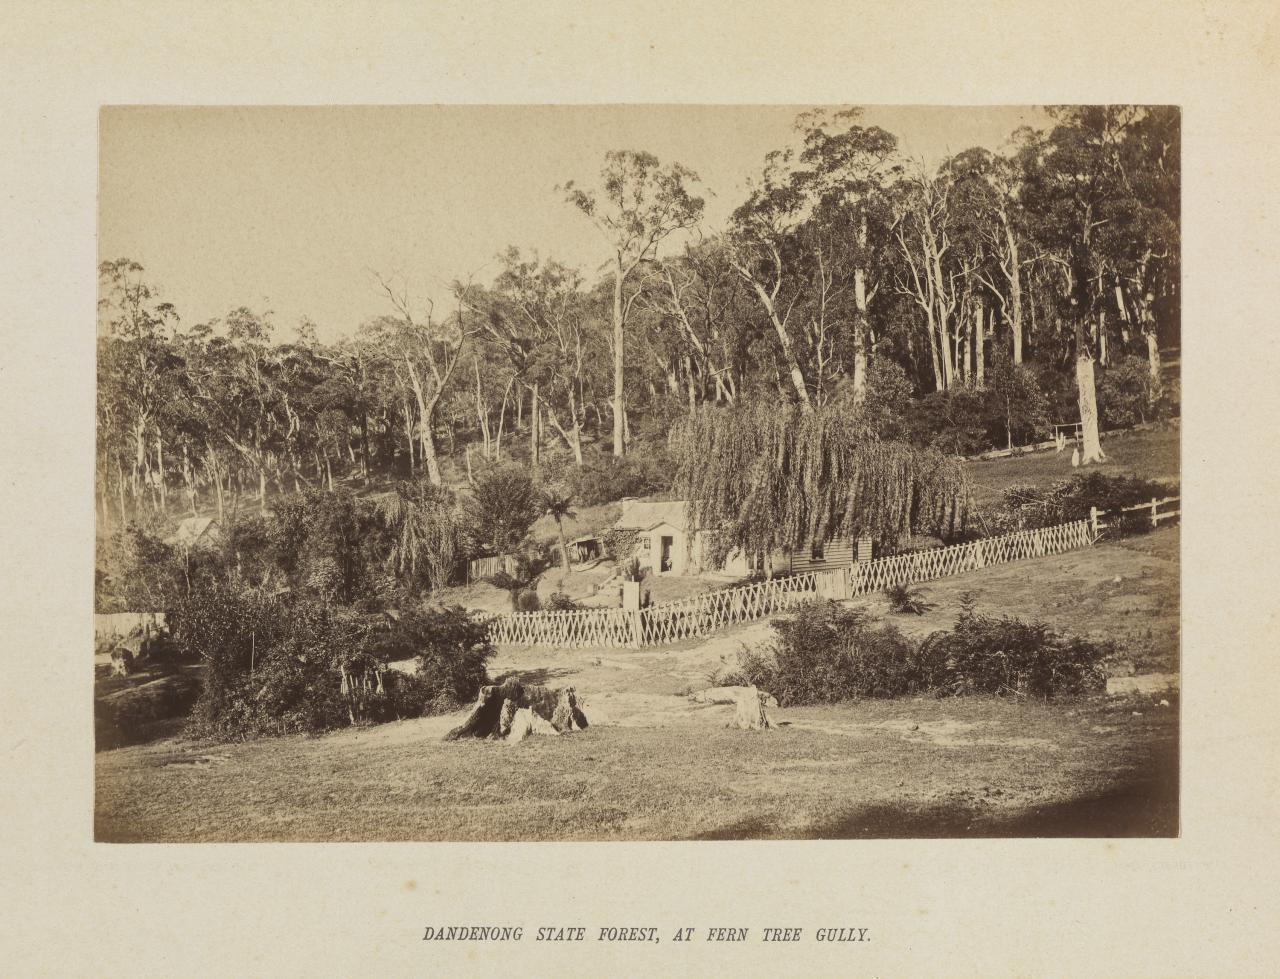 Dandenong State Forest, at Fern Tree Gully